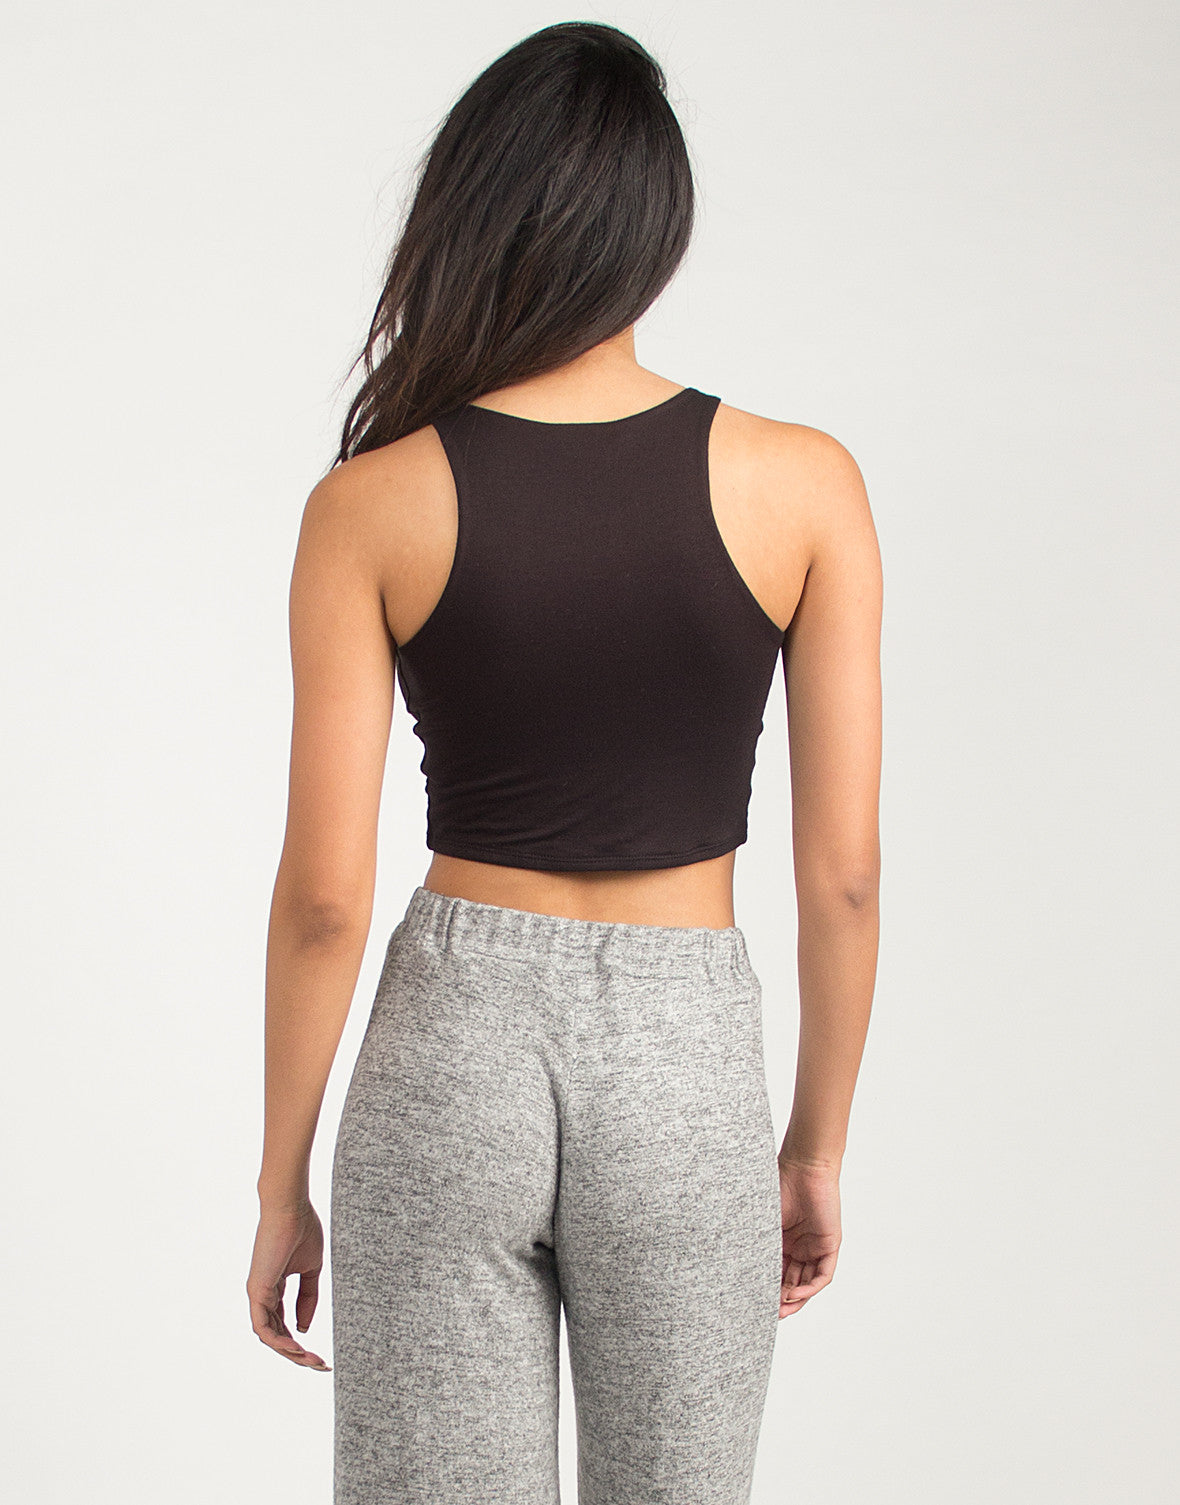 Sporty and Simple Cropped Tank - Black - Large - 2020AVE